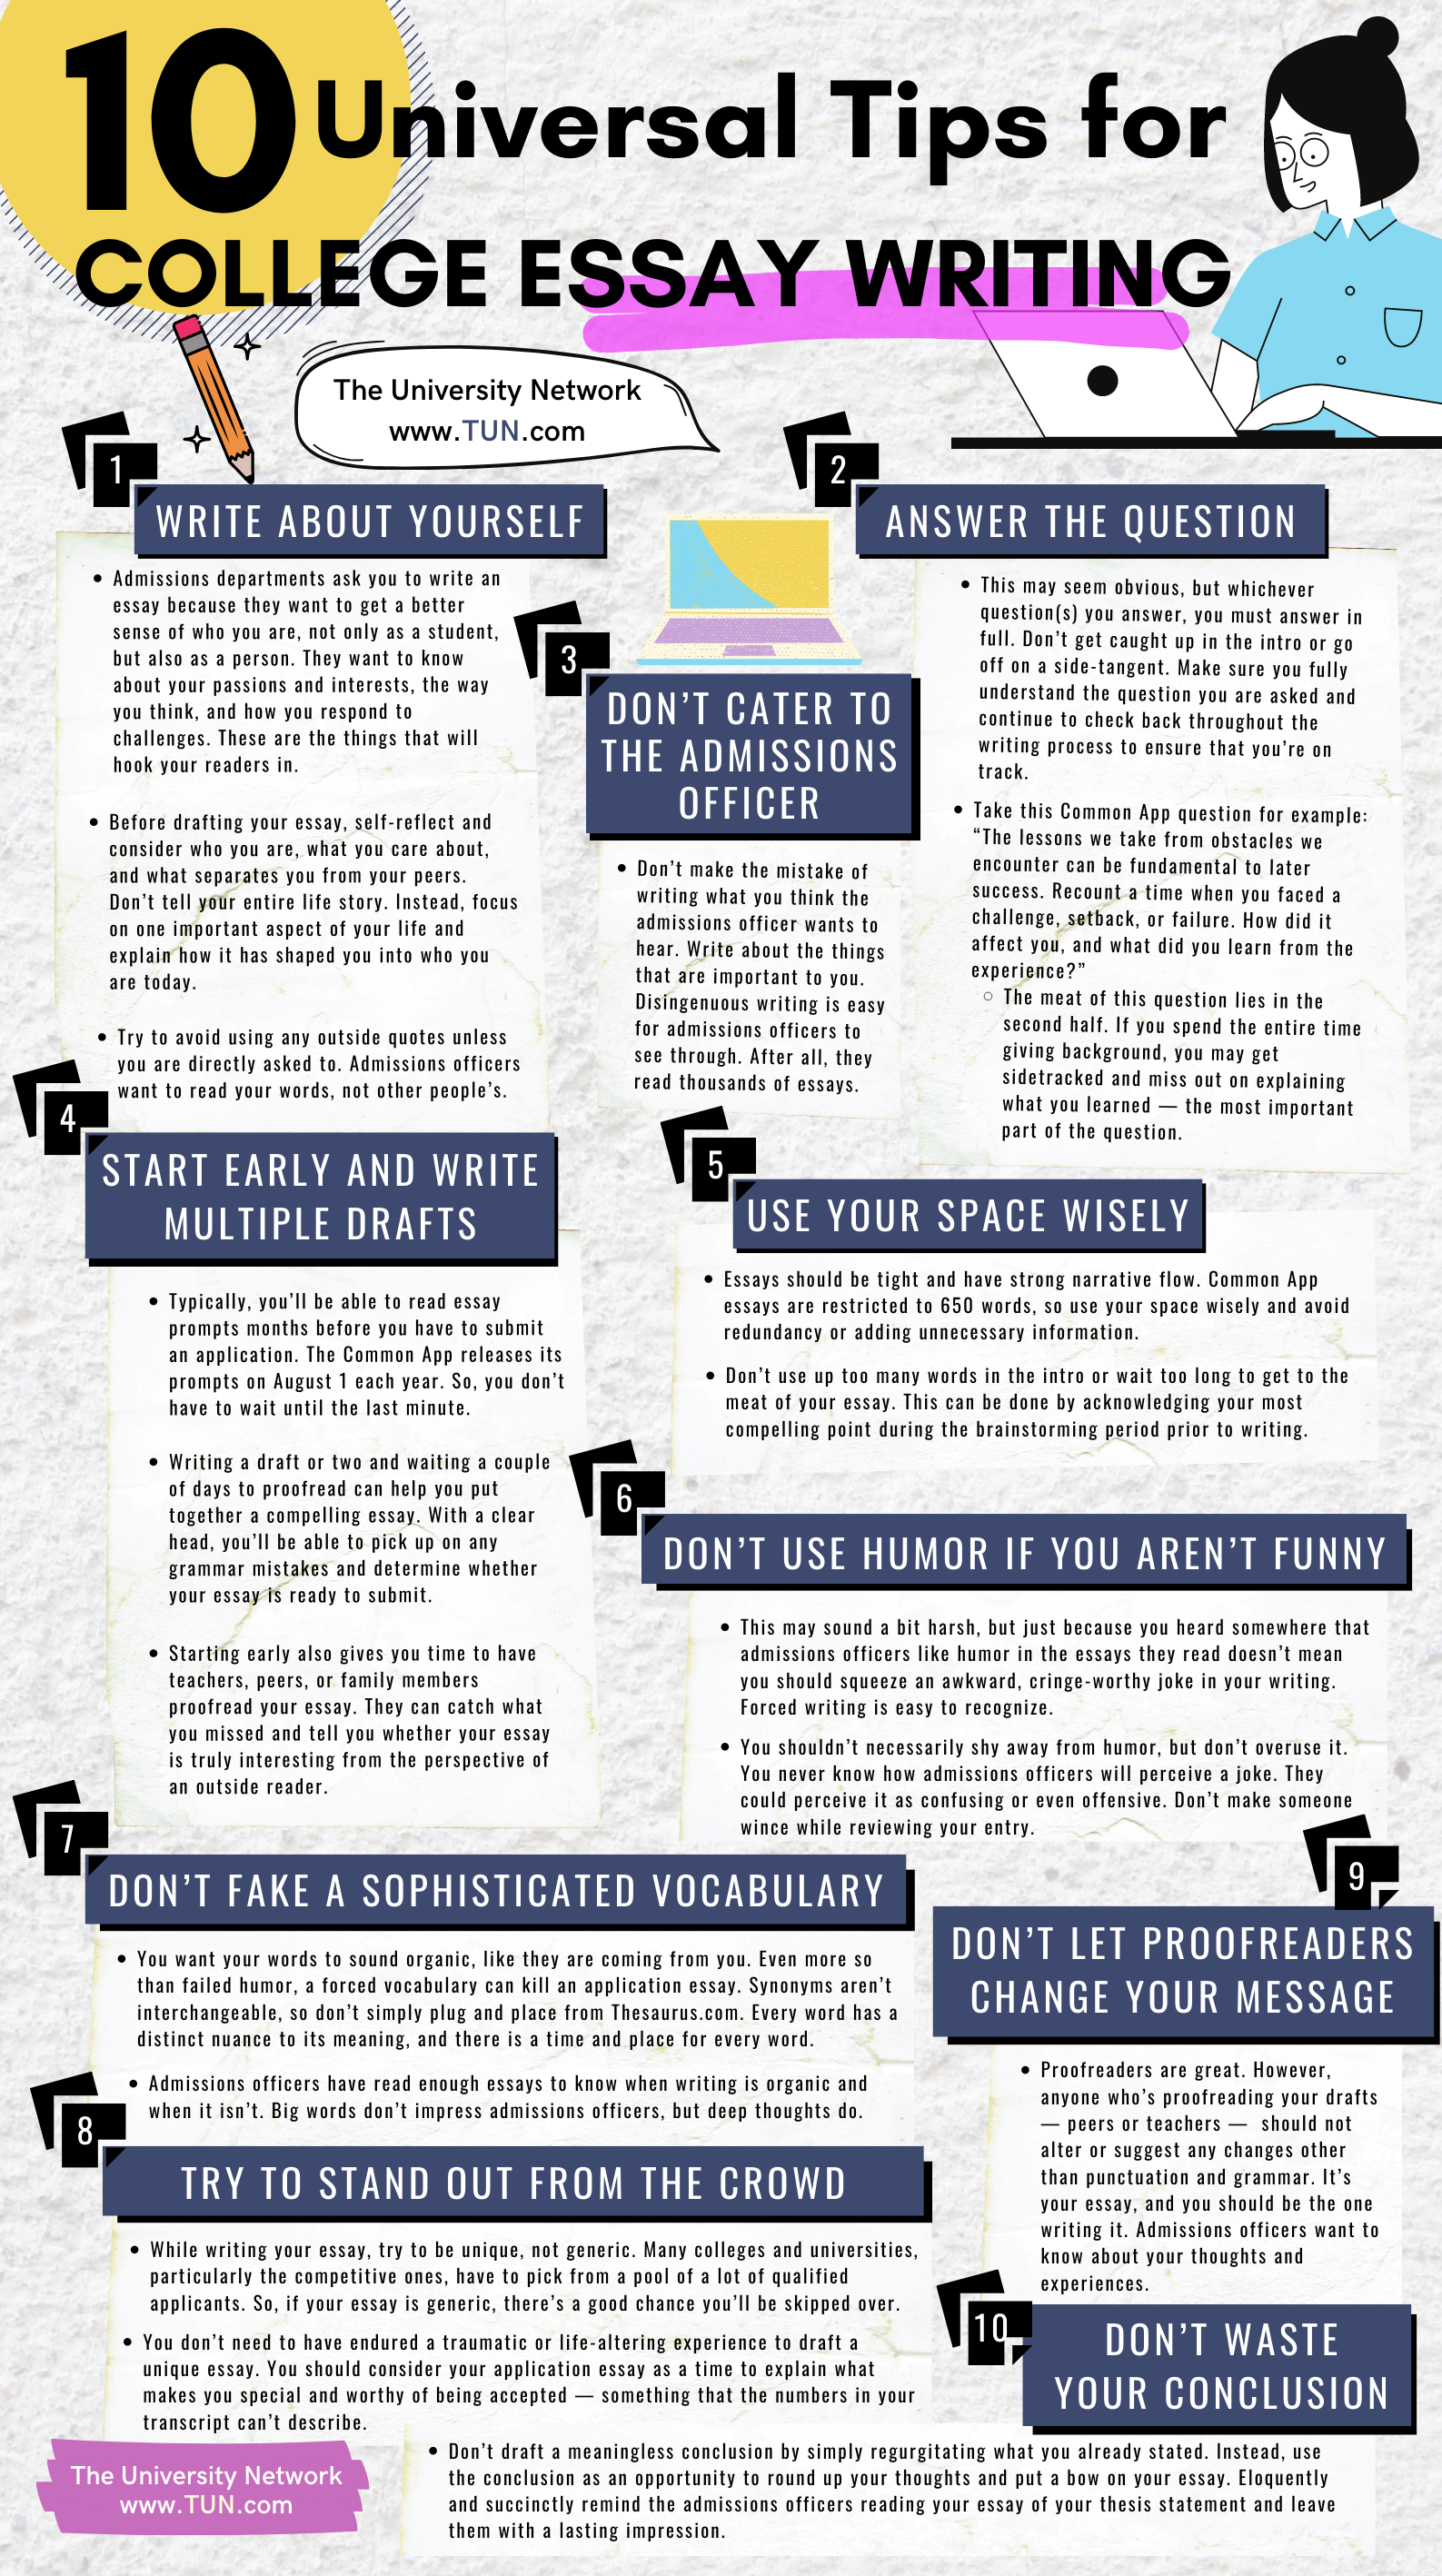 10 Universal Tips For College Essay Writing | The University Network